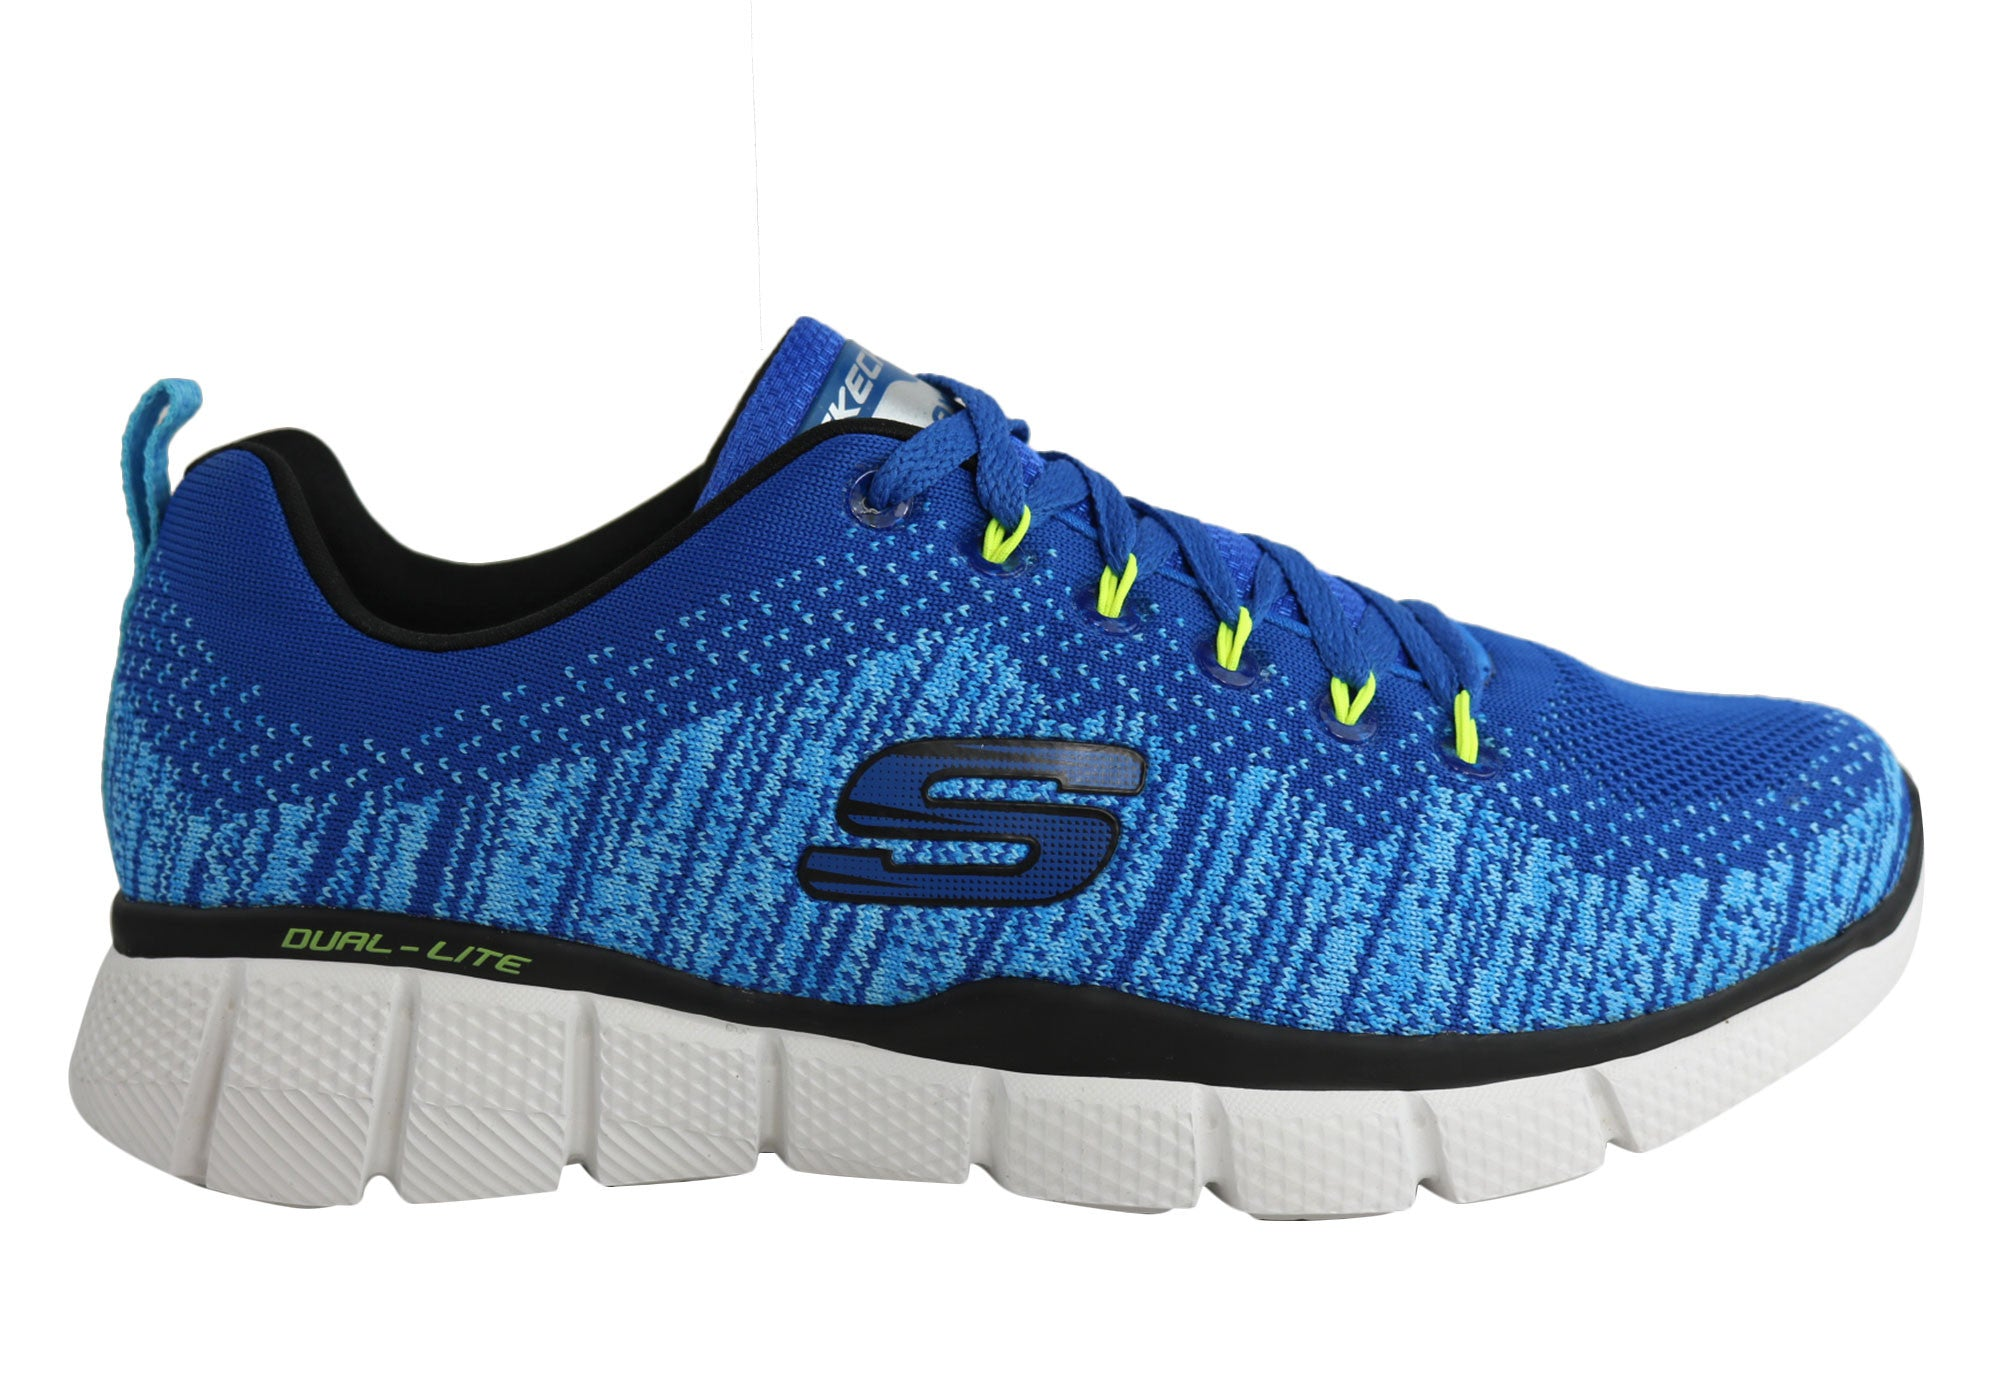 8769e2ae4ac5 Skechers Equalizer 2.0 Equal Game Mens Memory Foam Athletic Shoes ...